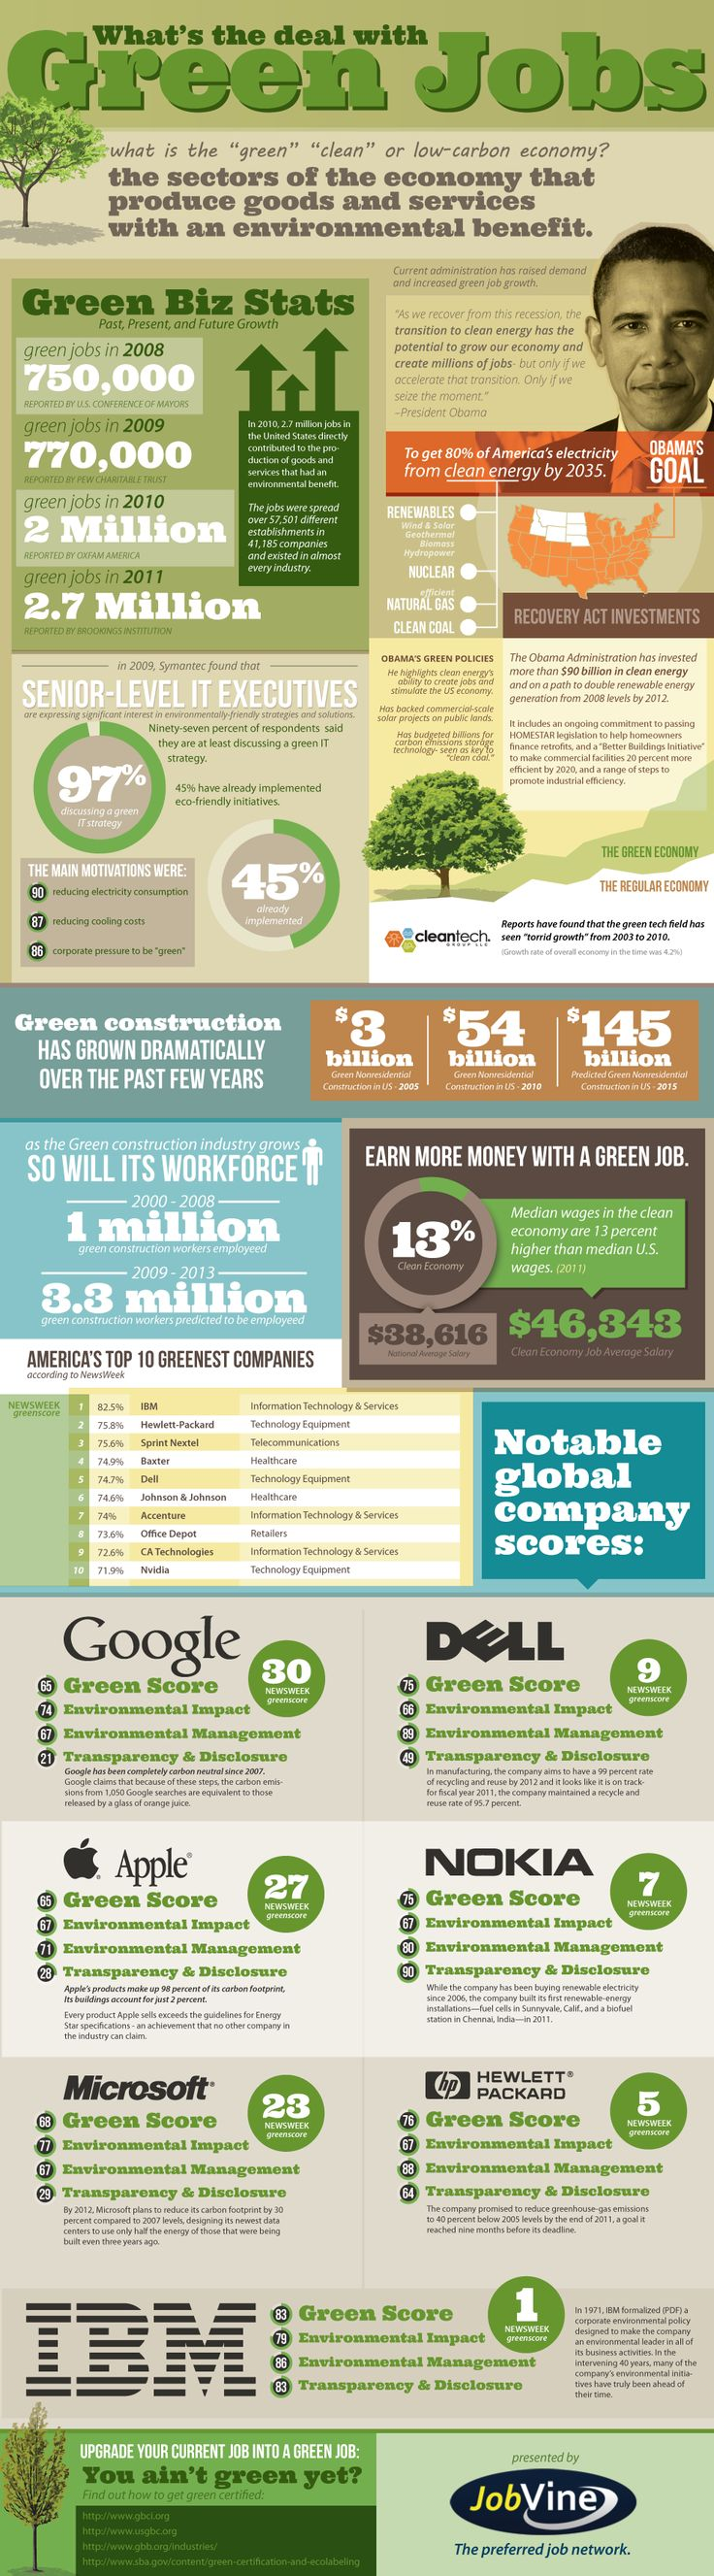 Infographic on Green Jobs via JobVine